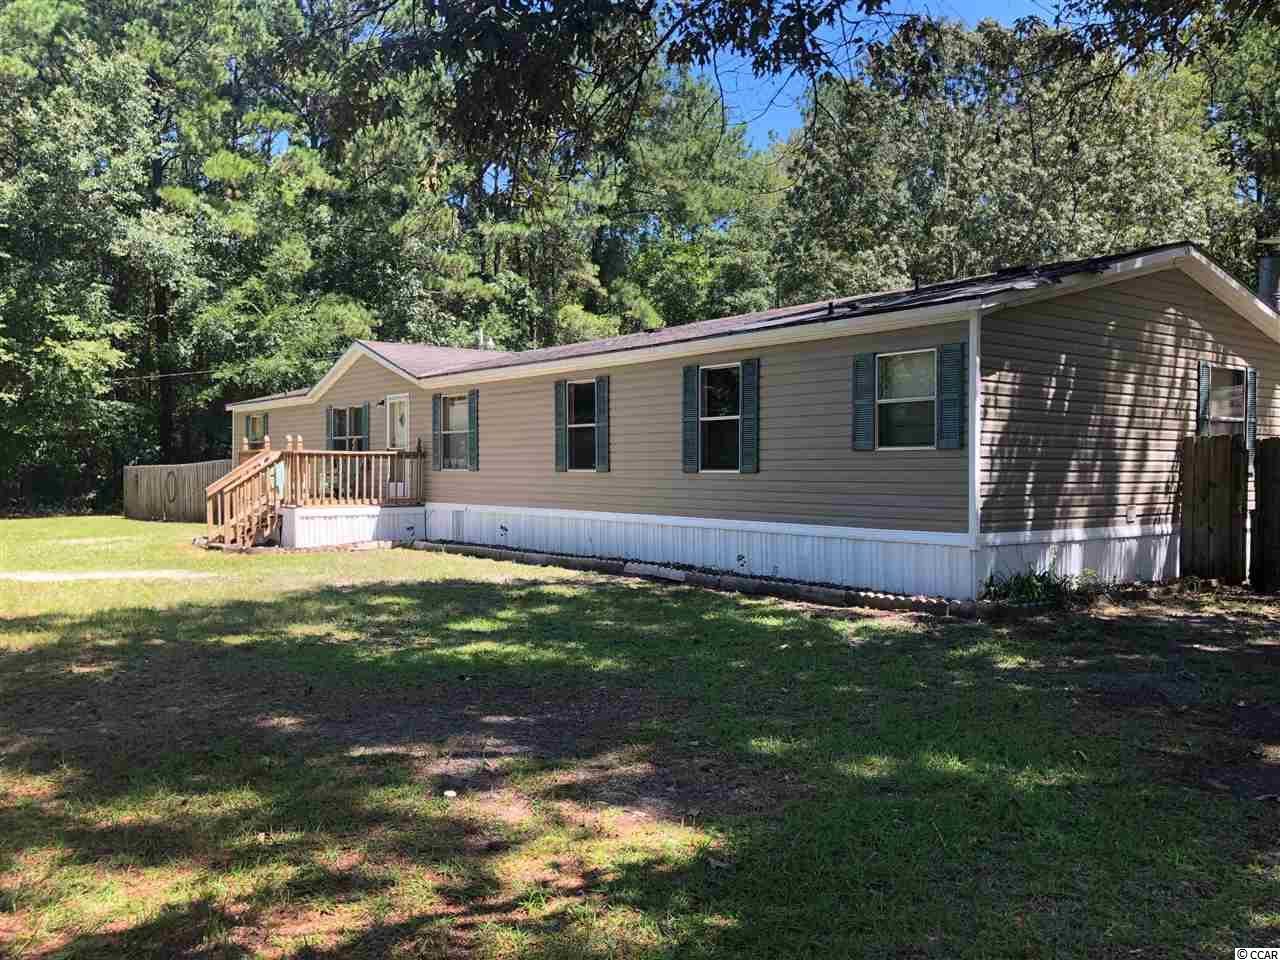 4 bedroom Manufactured Home on 1.03 acres! The Kitchen, along with plenty of counter space, has a Breakfast Room and the Island offers additional seating. Right off the kitchen is the 19x12 Family Room. It has a traditional style gas fireplace. Don't need a Formal Dining and Living Room? They could be used as a kid's playroom and an office.  Small quiet neighborhood with NO HOA! There are 2 large storage buildings and a 2 bay carport in the backyard with easy access from the second driveway and there's still plenty of room to park a motor home, camper and boats. Only minutes to downtown Georgetown and all the third oldest city in SC has to offer. Only 30 minutes to Conway and a short drive to all the beaches in Georgetown and Horry Counties.  Square footage is approximate and not guaranteed. Buyer is responsible for verification.